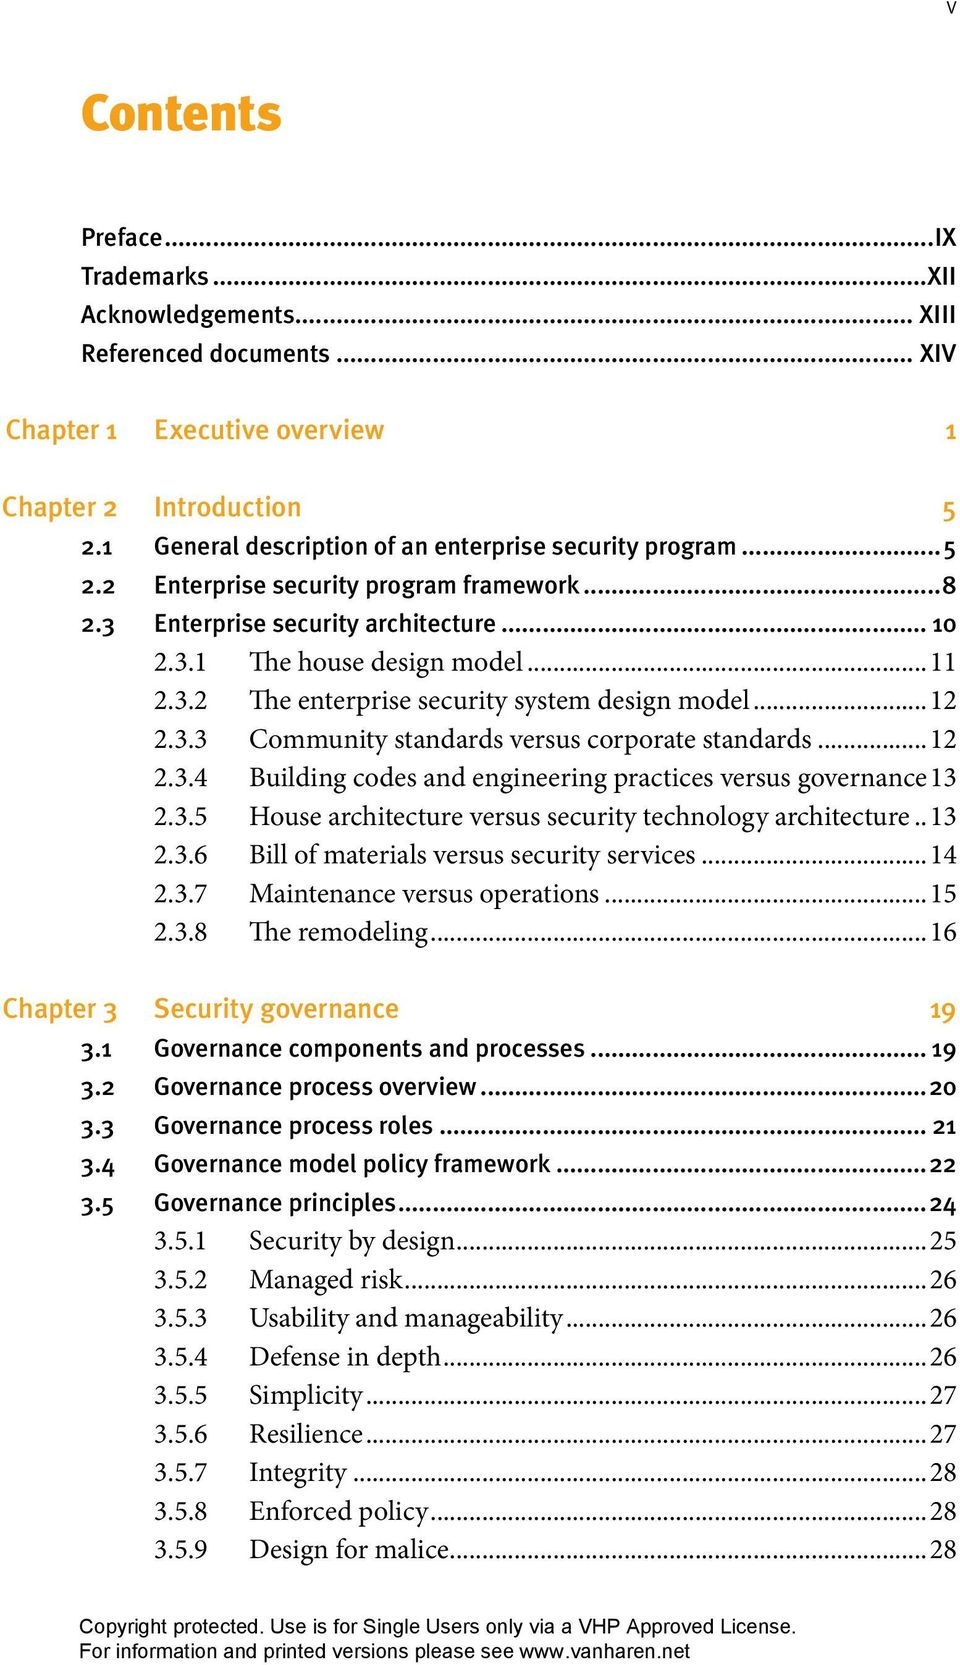 ..12 2.3.3 Community standards versus corporate standards...12 2.3.4 Building codes and engineering practices versus governance 13 2.3.5 House architecture versus security technology architecture.